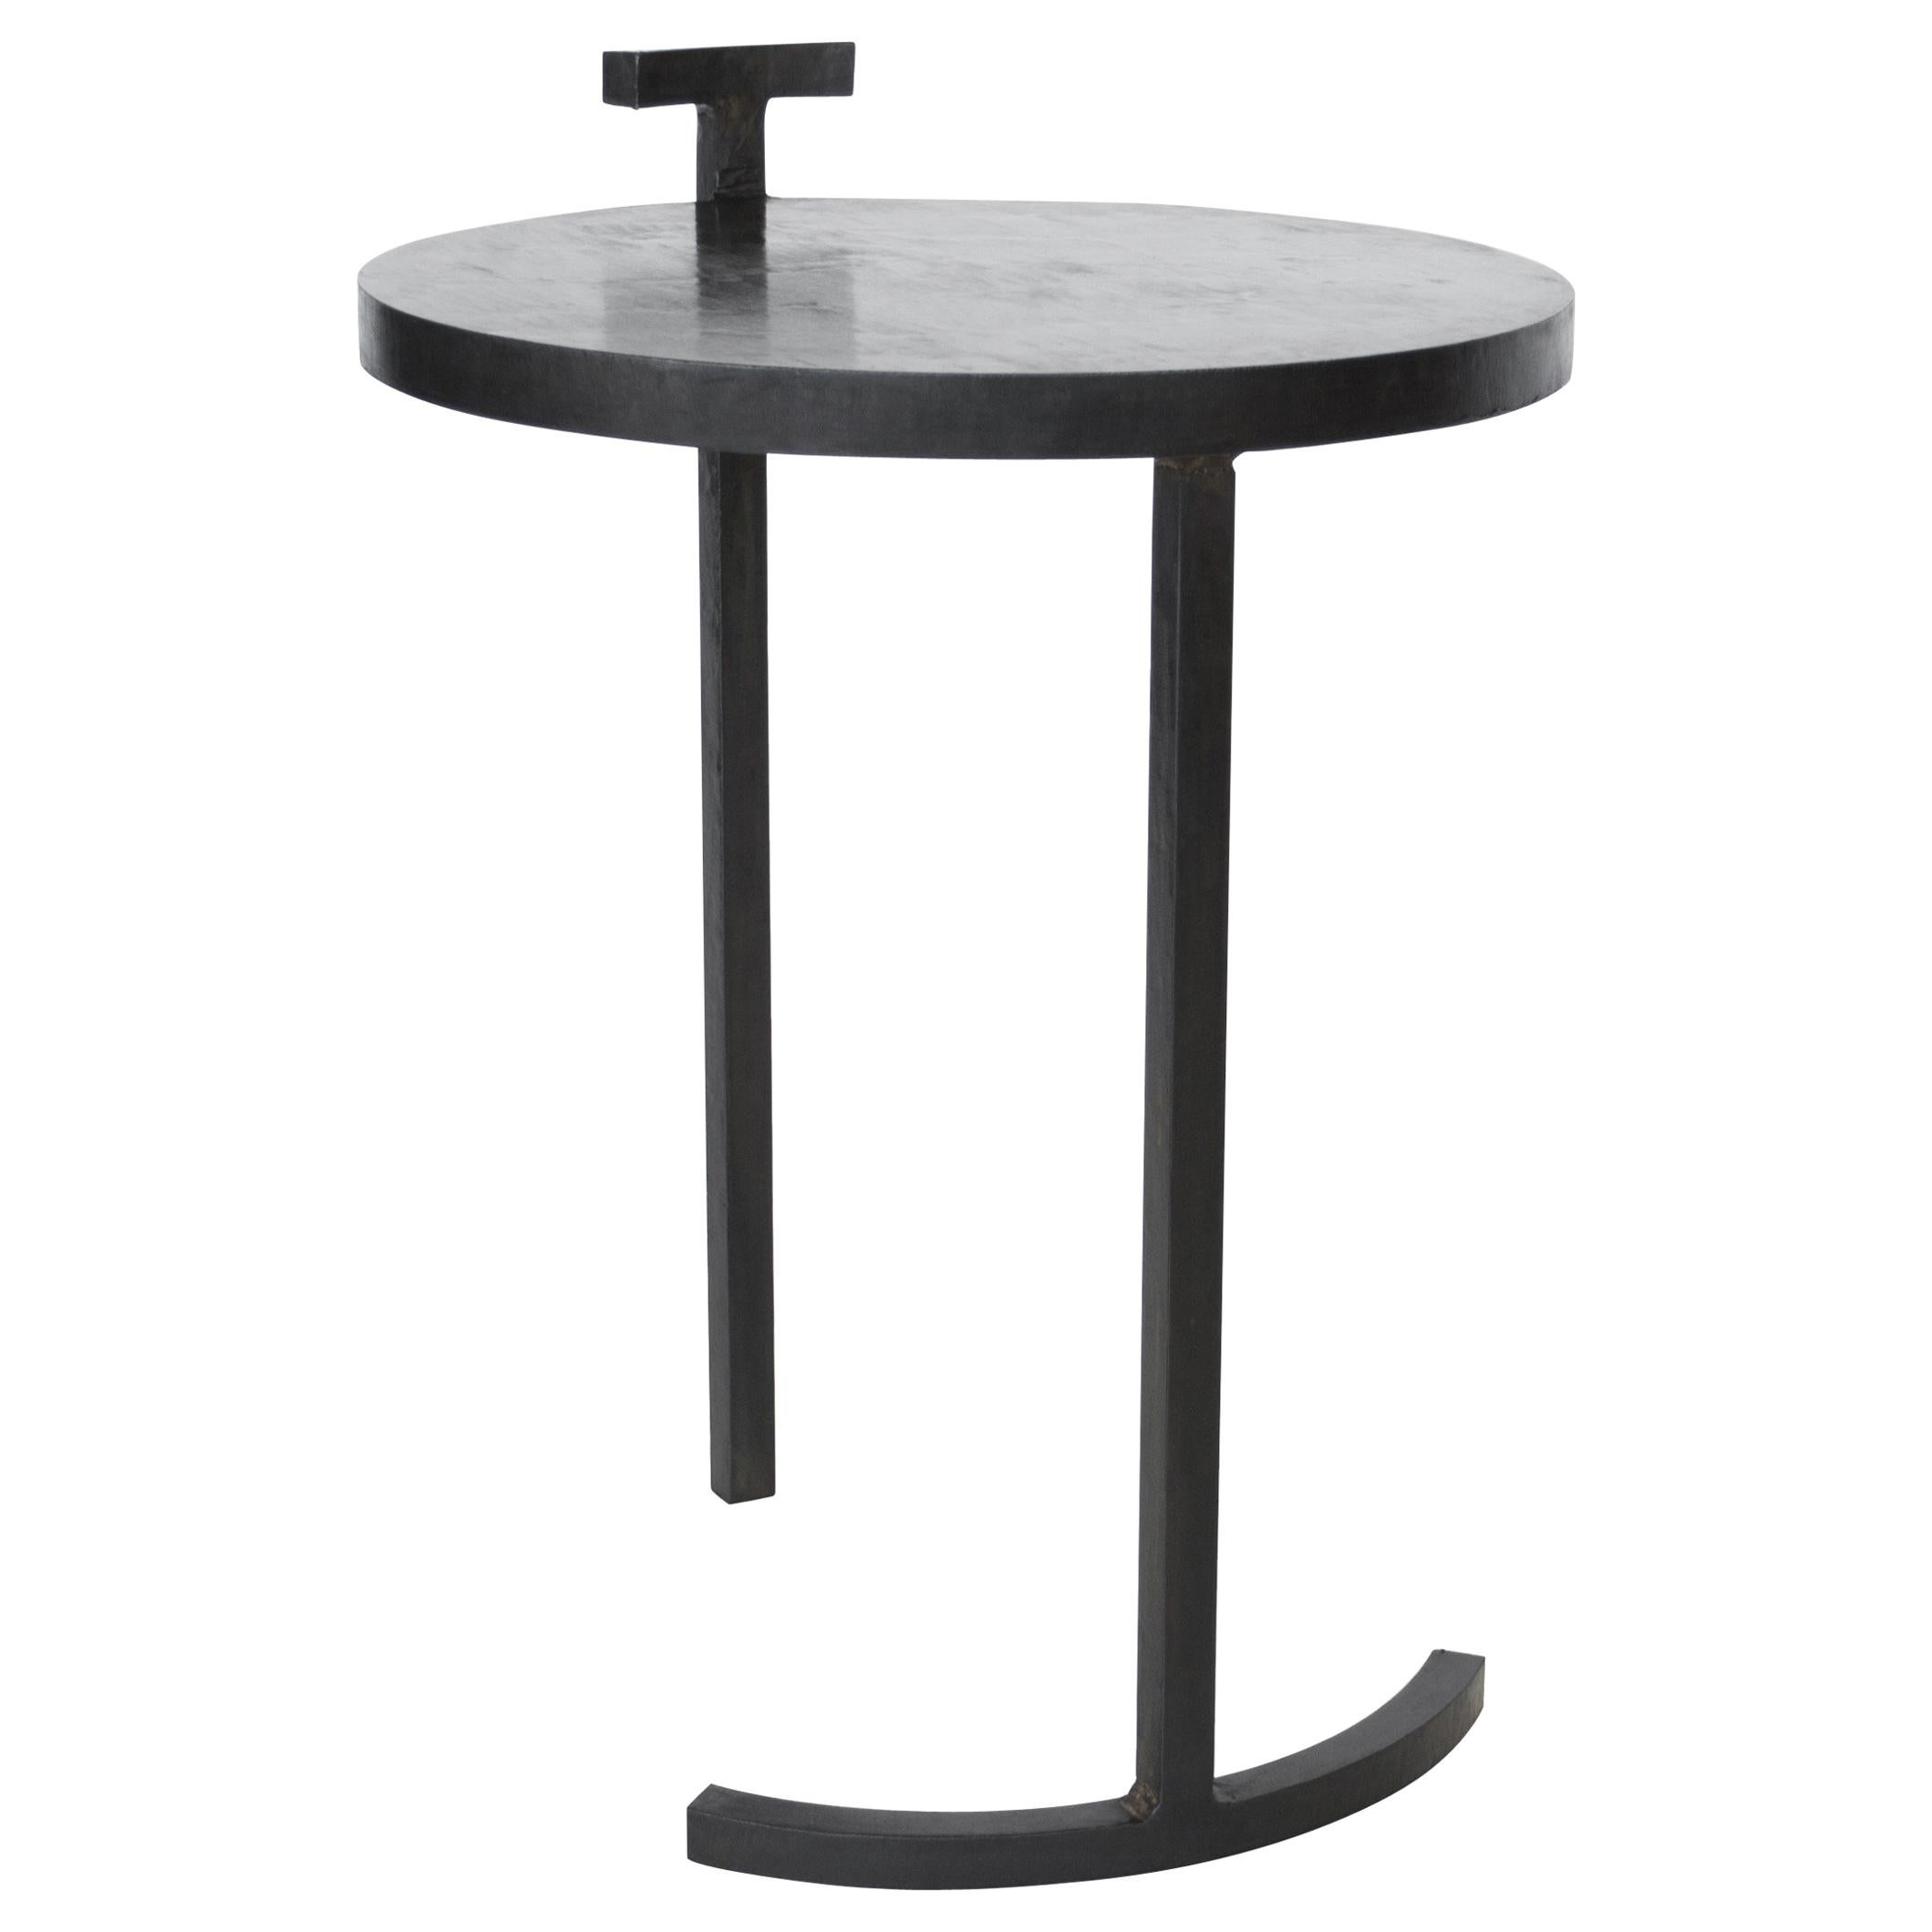 Side Table Round Modern Minimalist Geometric Cast Blackened Waxed Steel Contemp